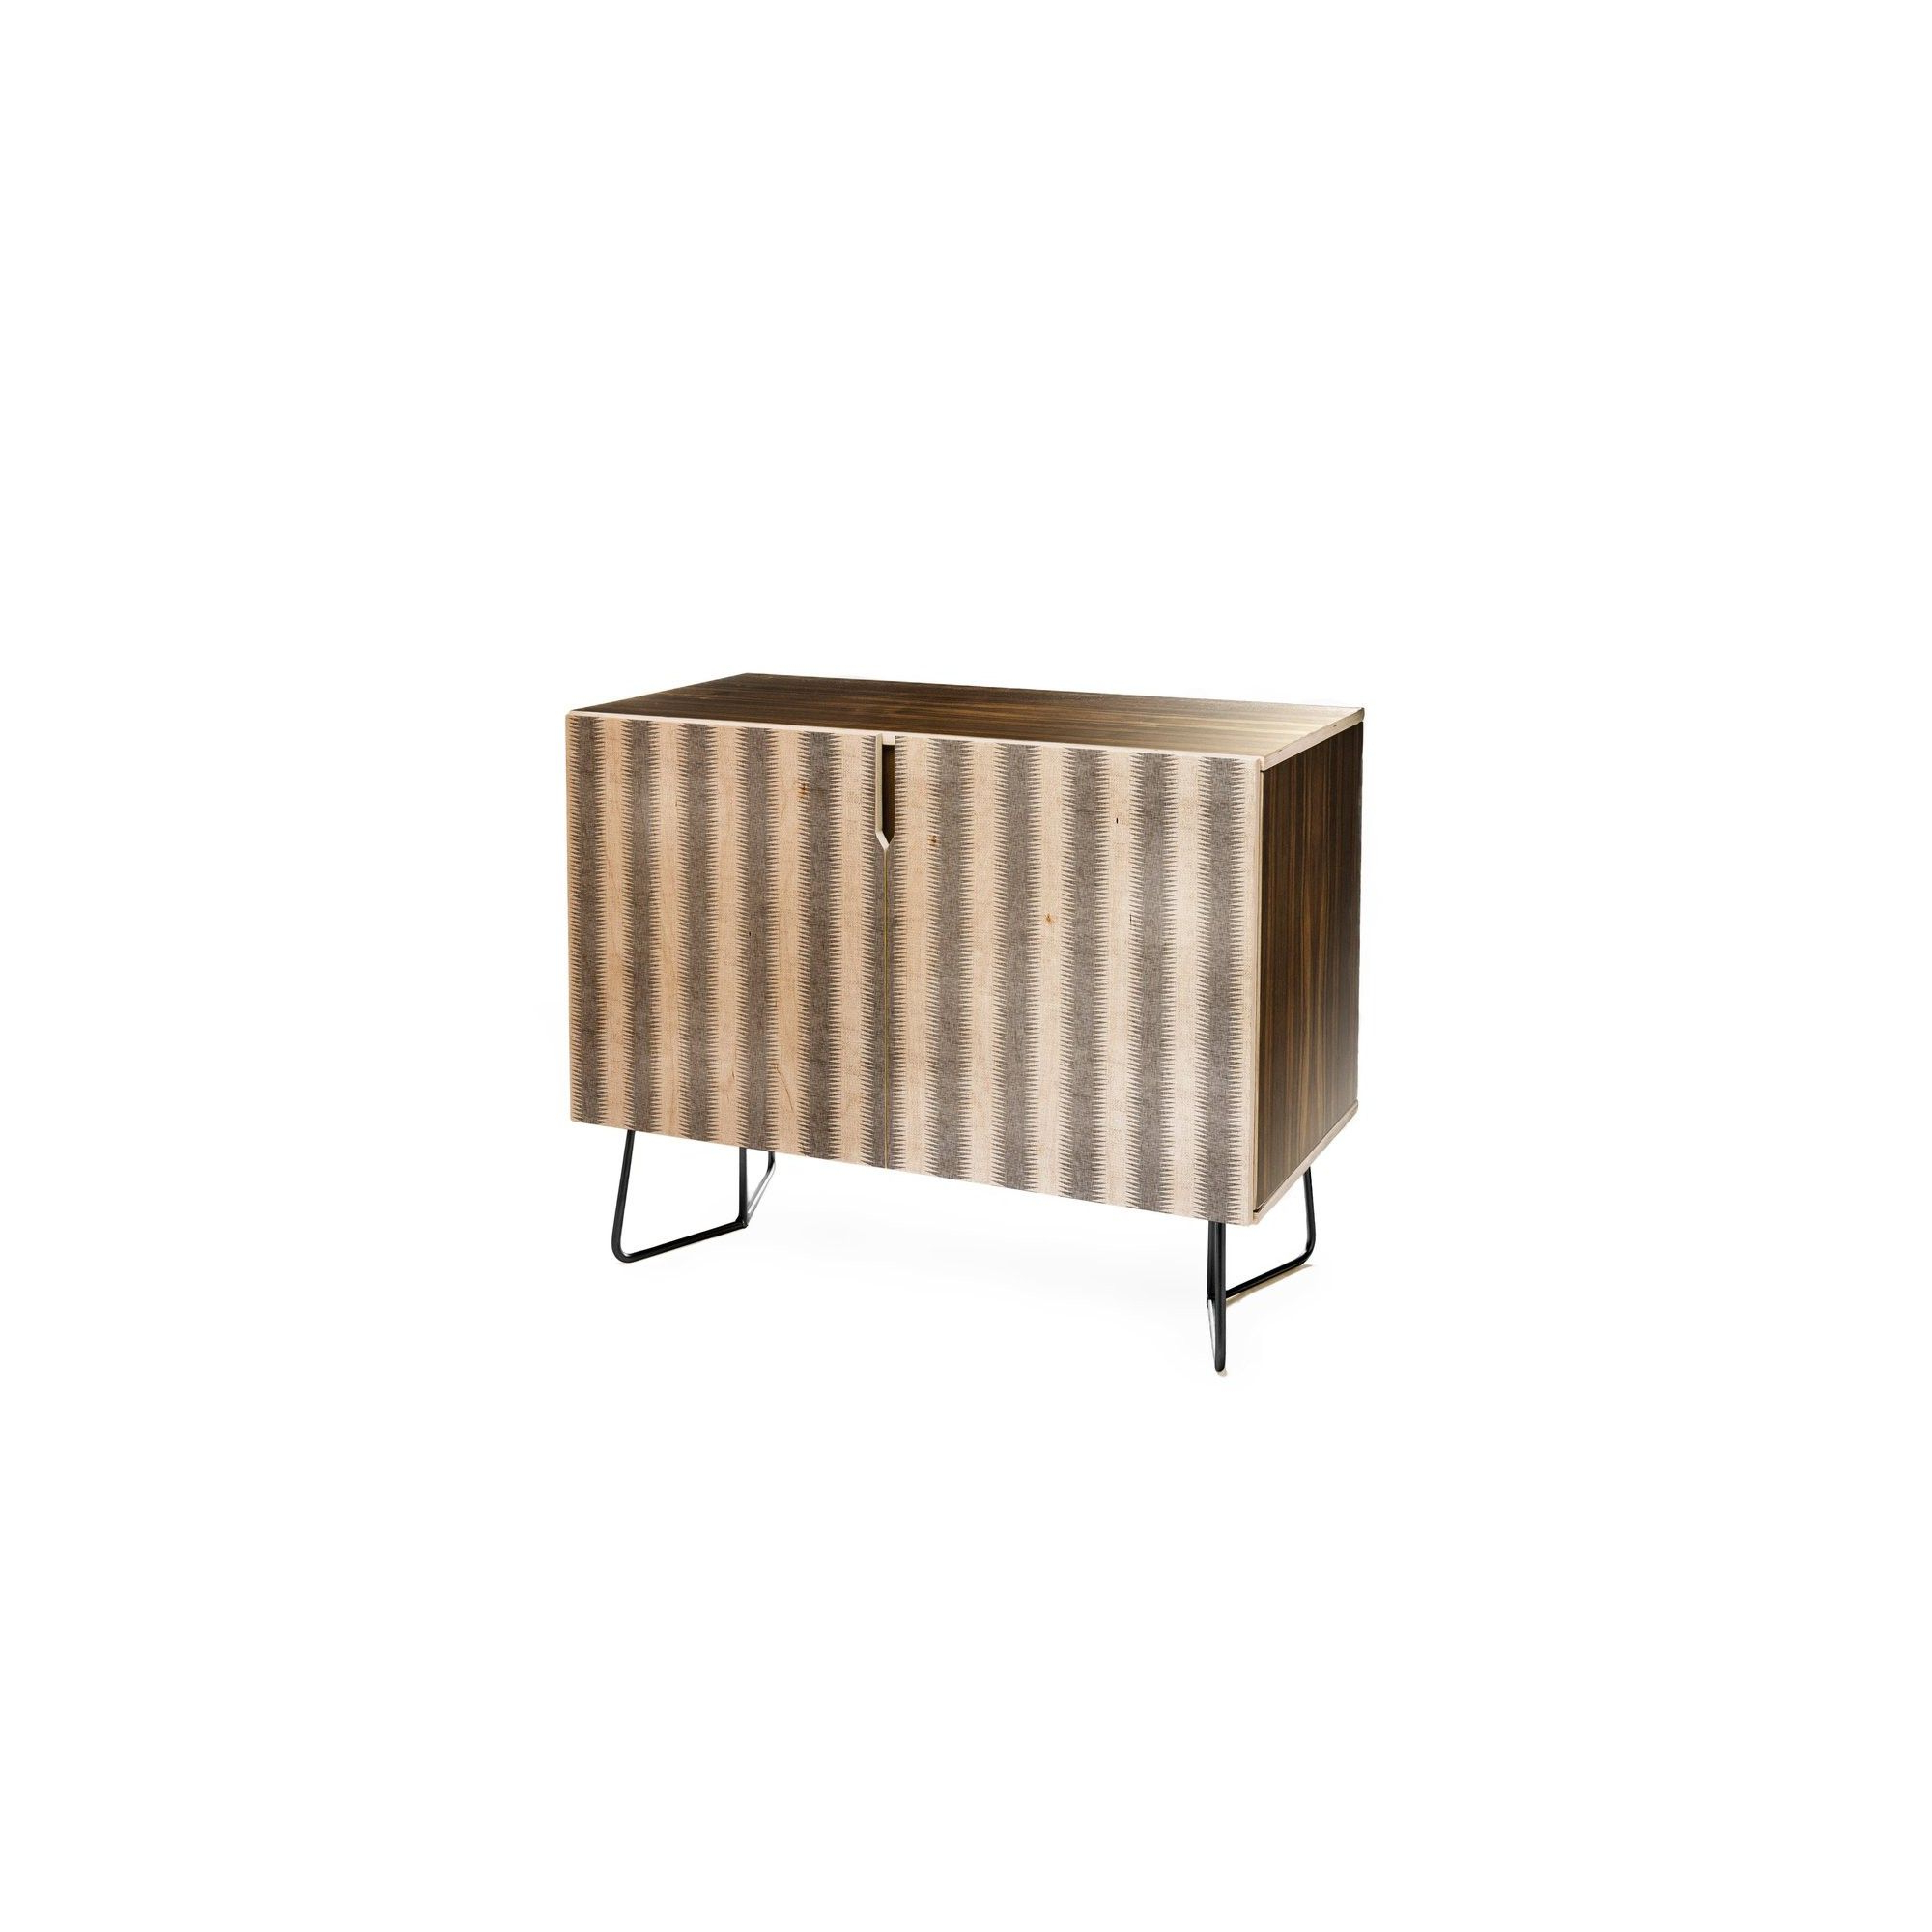 Holli Zollinger French Seaside Stripe Credenza Black Legs Pertaining To Beach Stripes Credenzas (View 14 of 20)